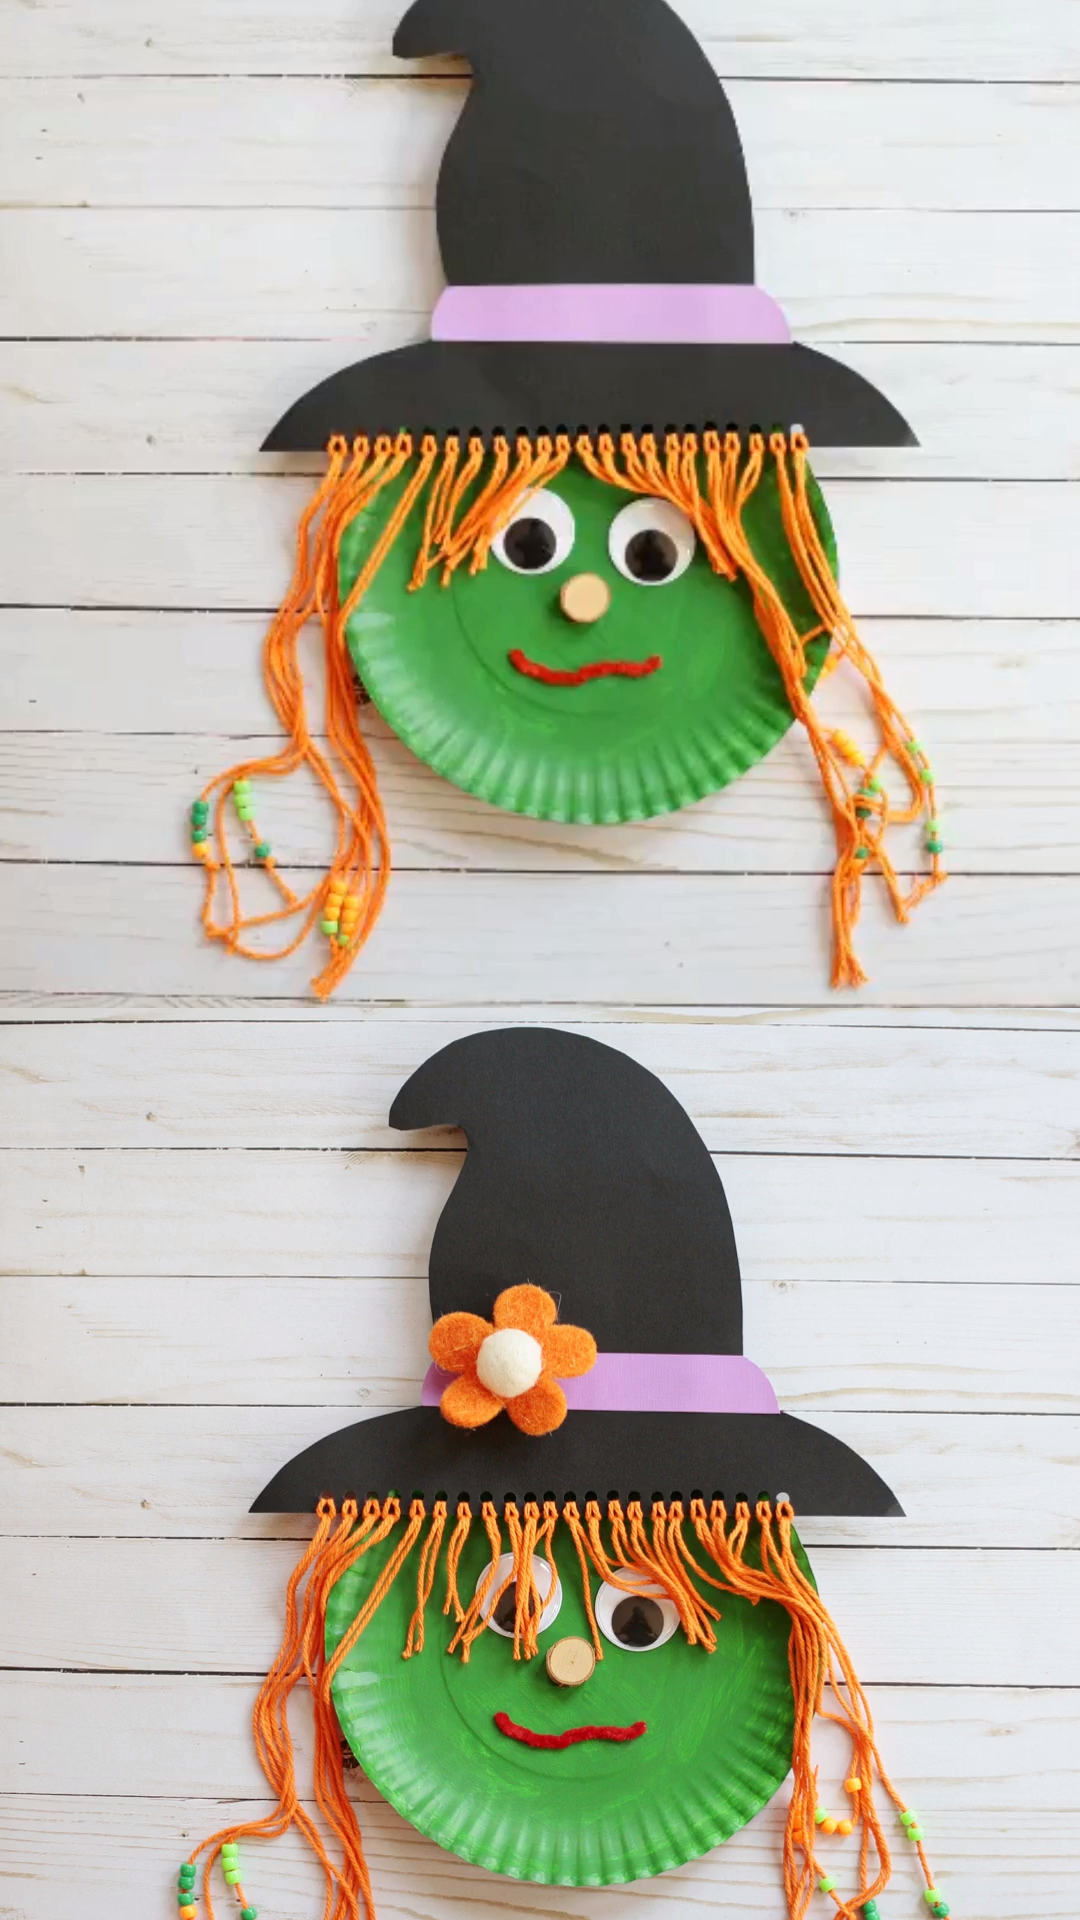 Paper plate witch craft for kids #preschoolers